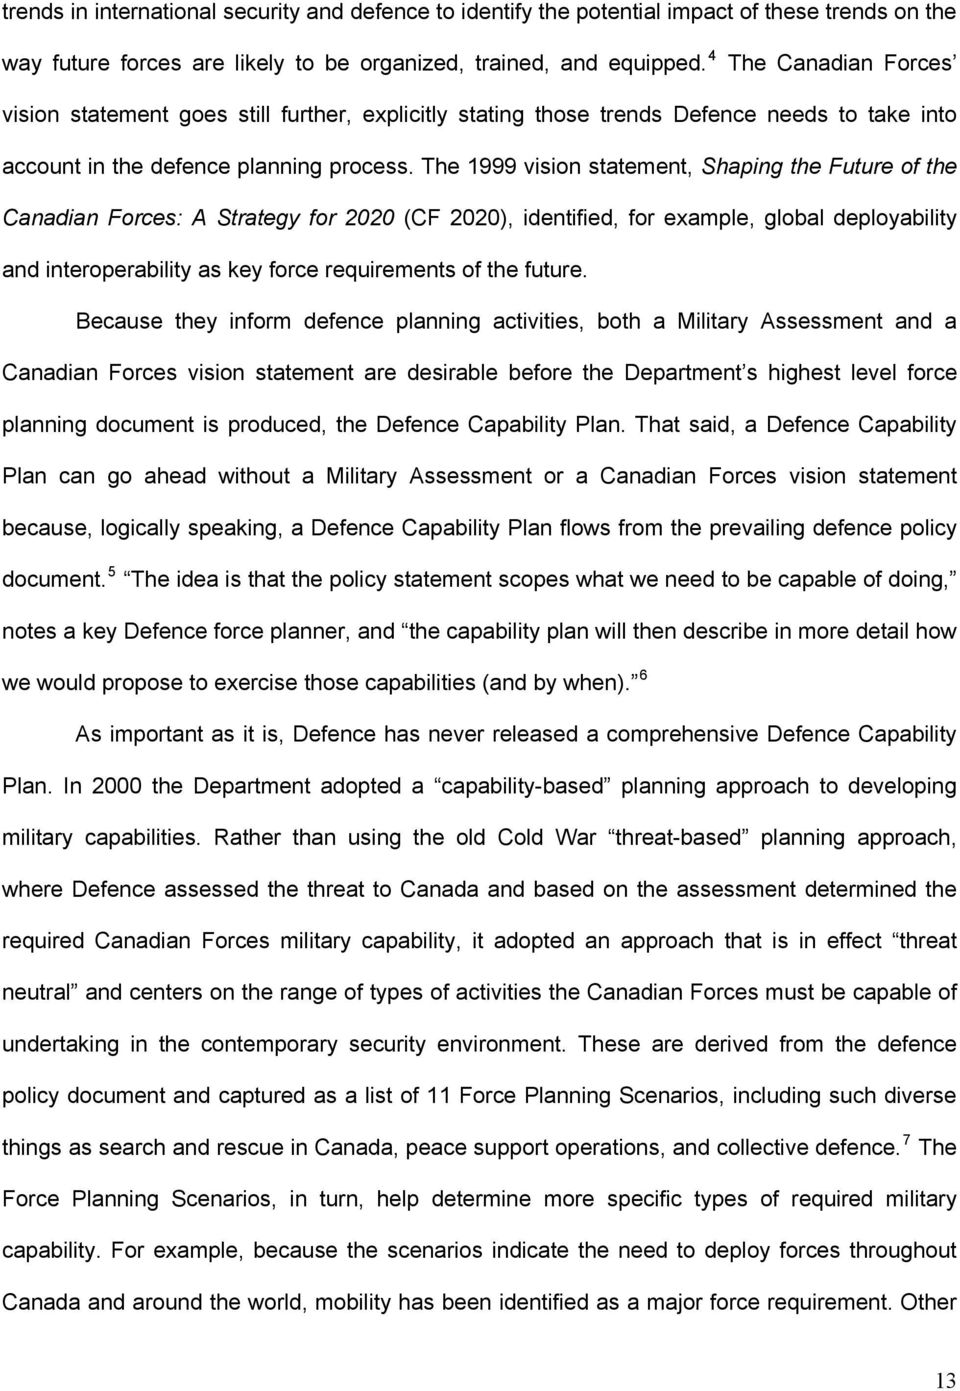 The 1999 vision statement, Shaping the Future of the Canadian Forces: A Strategy for 2020 (CF 2020), identified, for example, global deployability and interoperability as key force requirements of